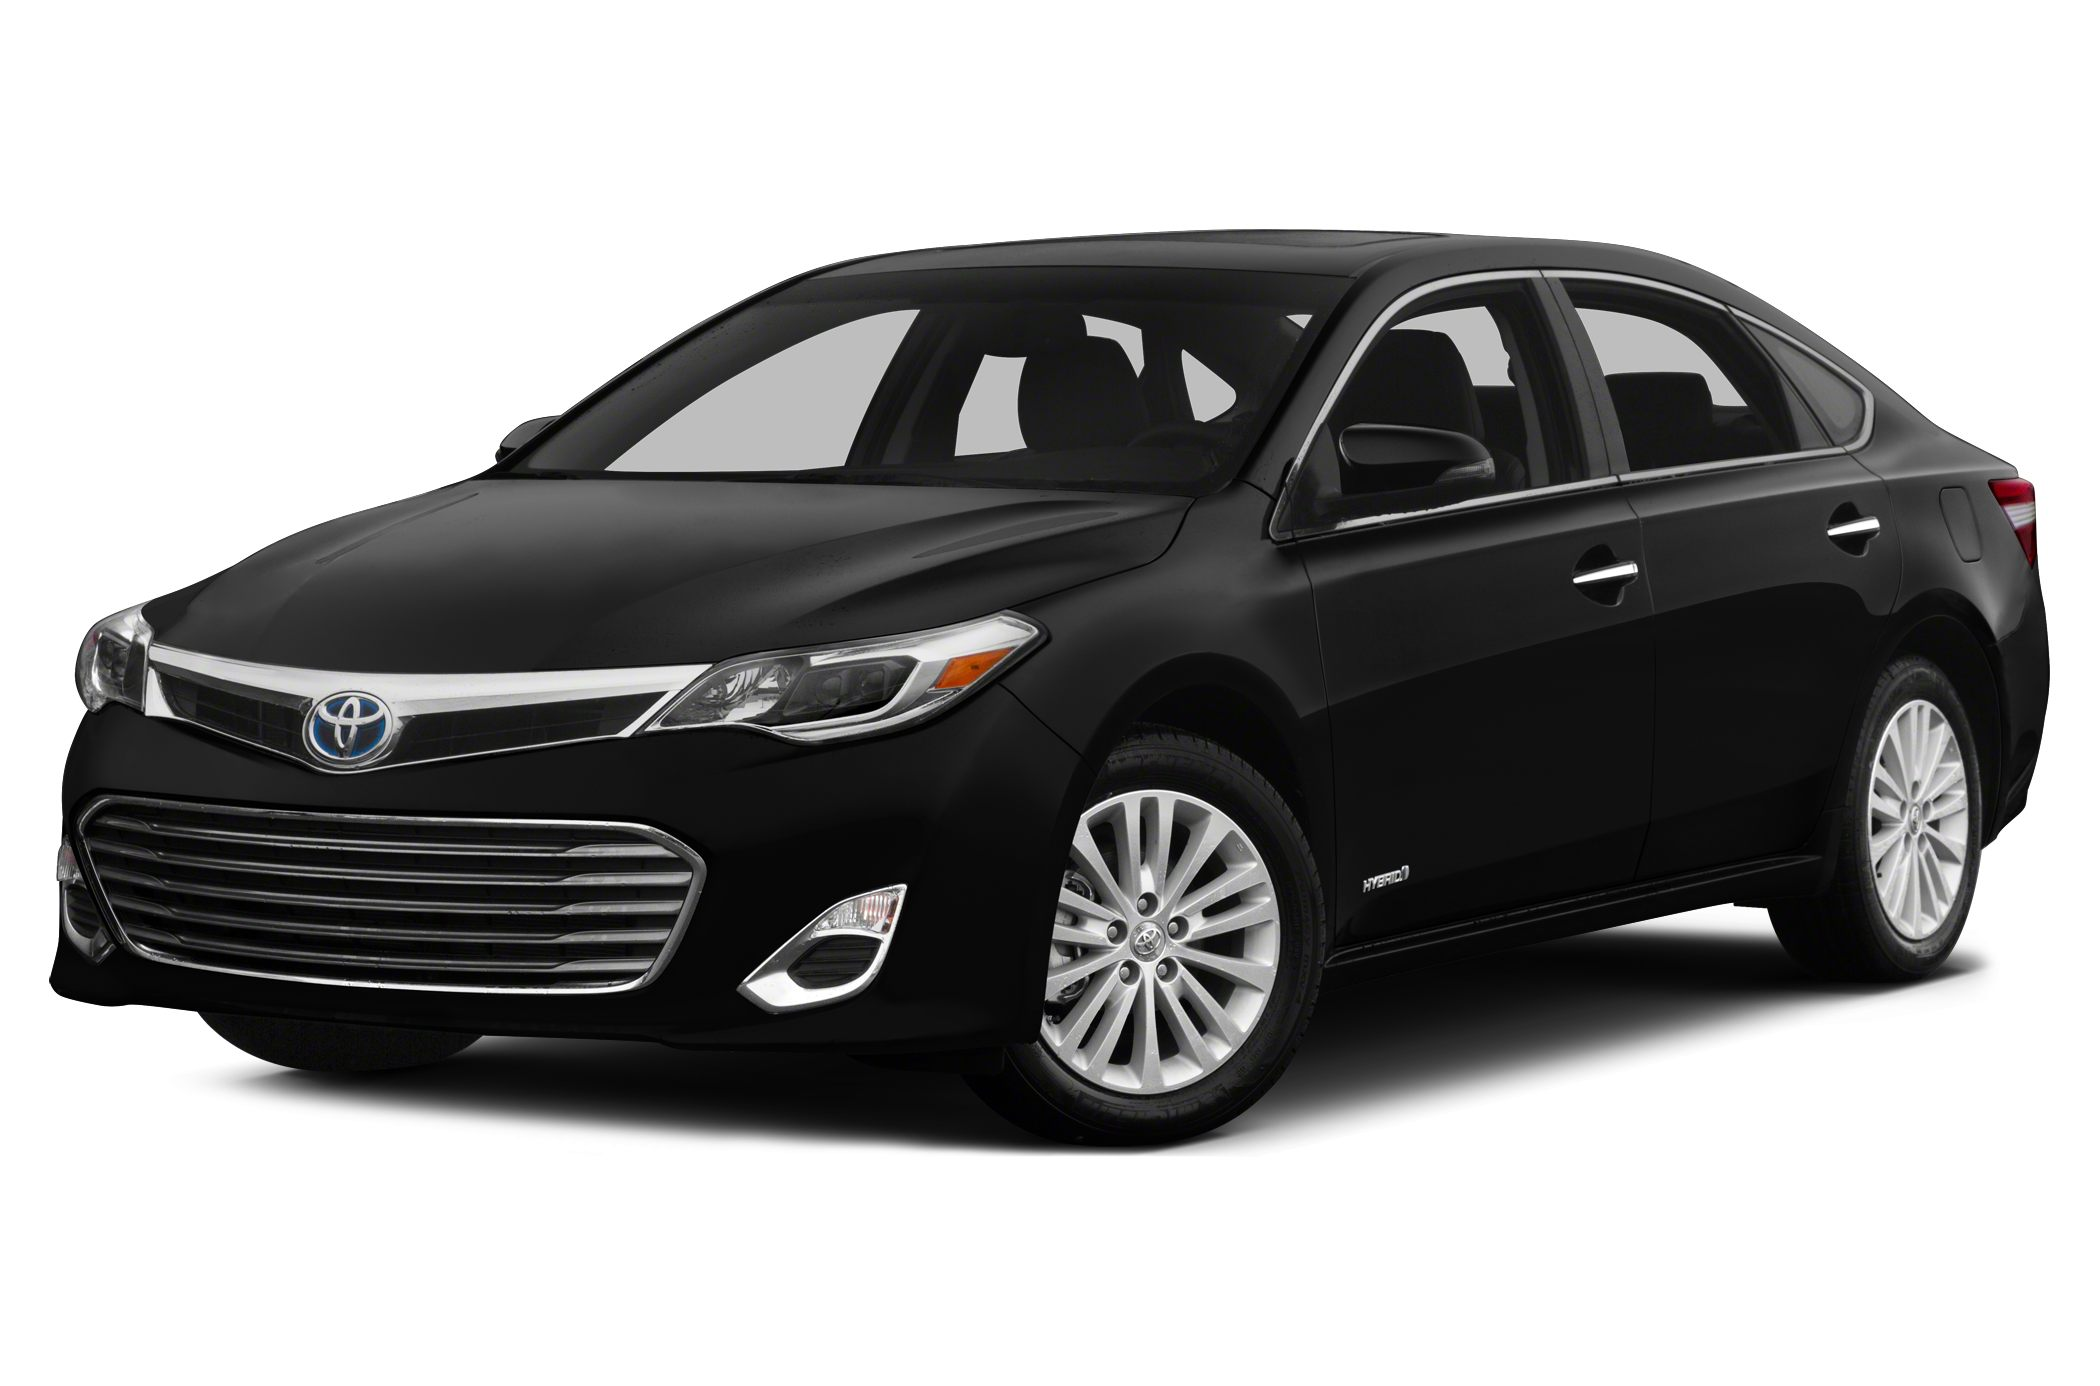 2014 Toyota Avalon Hybrid XLE Touring Sedan for sale in Ashland for $29,000 with 8,097 miles.